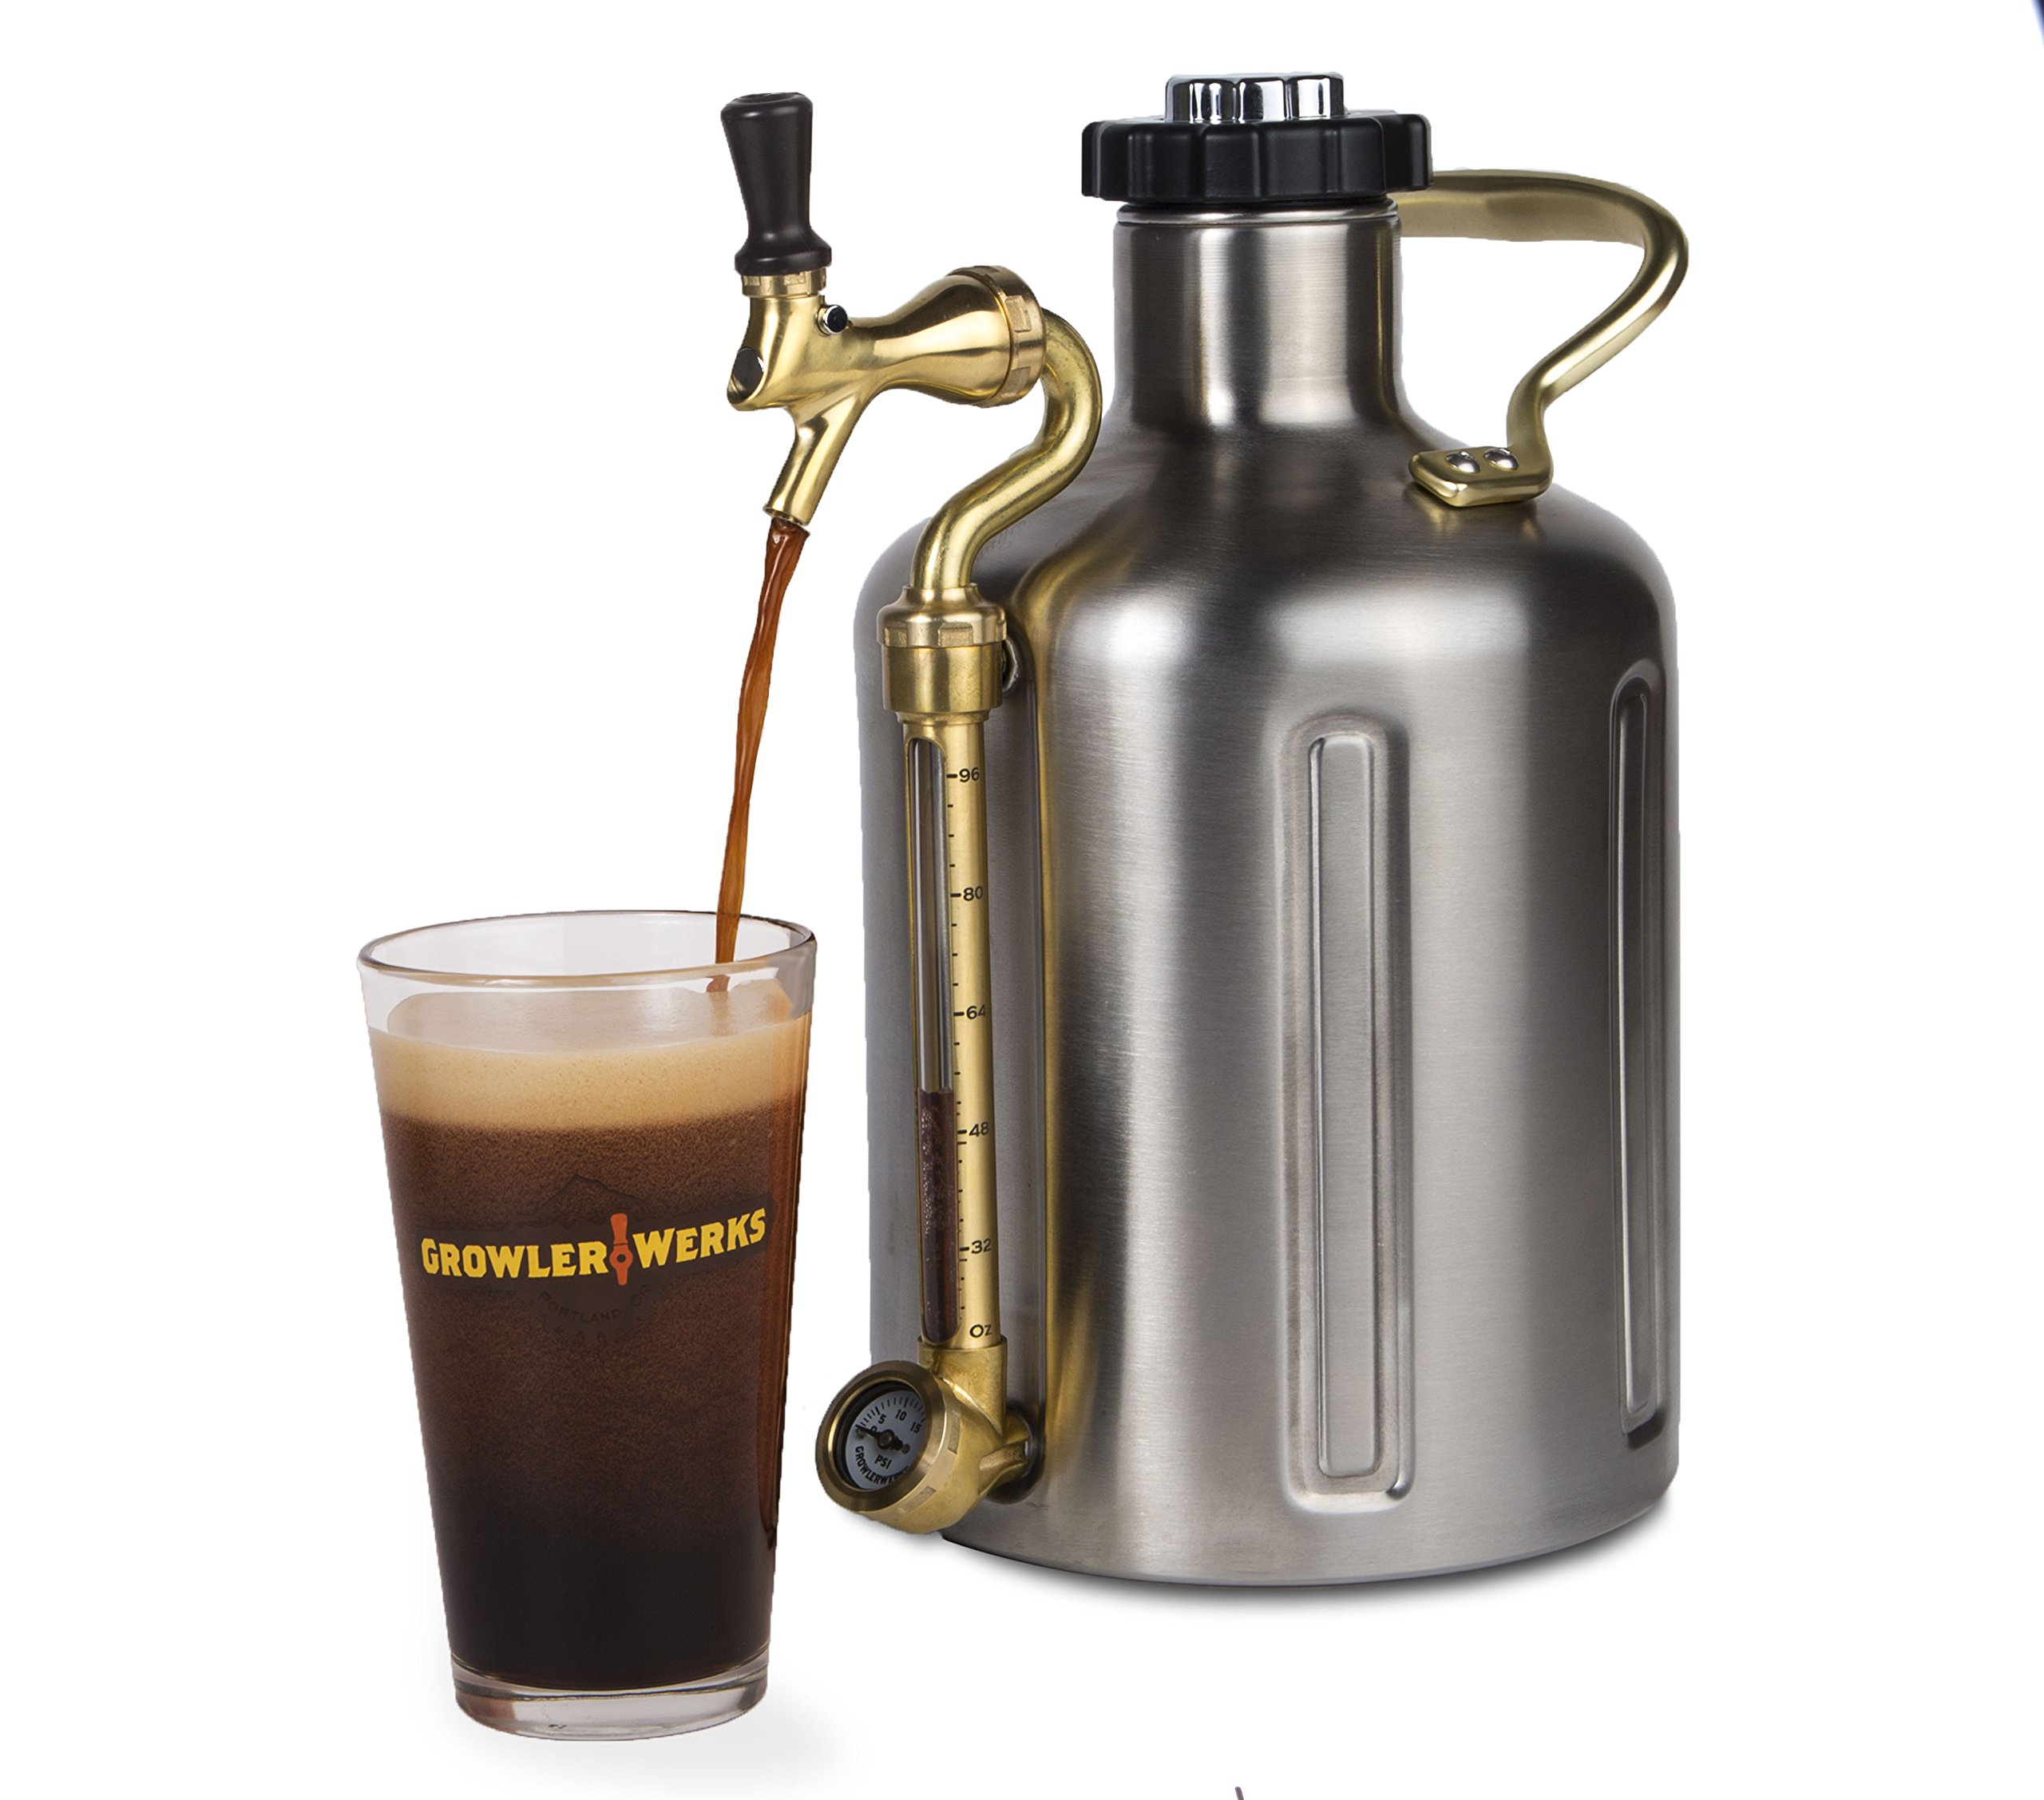 GrowlerWerks uKeg 128 Pressurized Growler for Craft Beer by GrowlerWerks